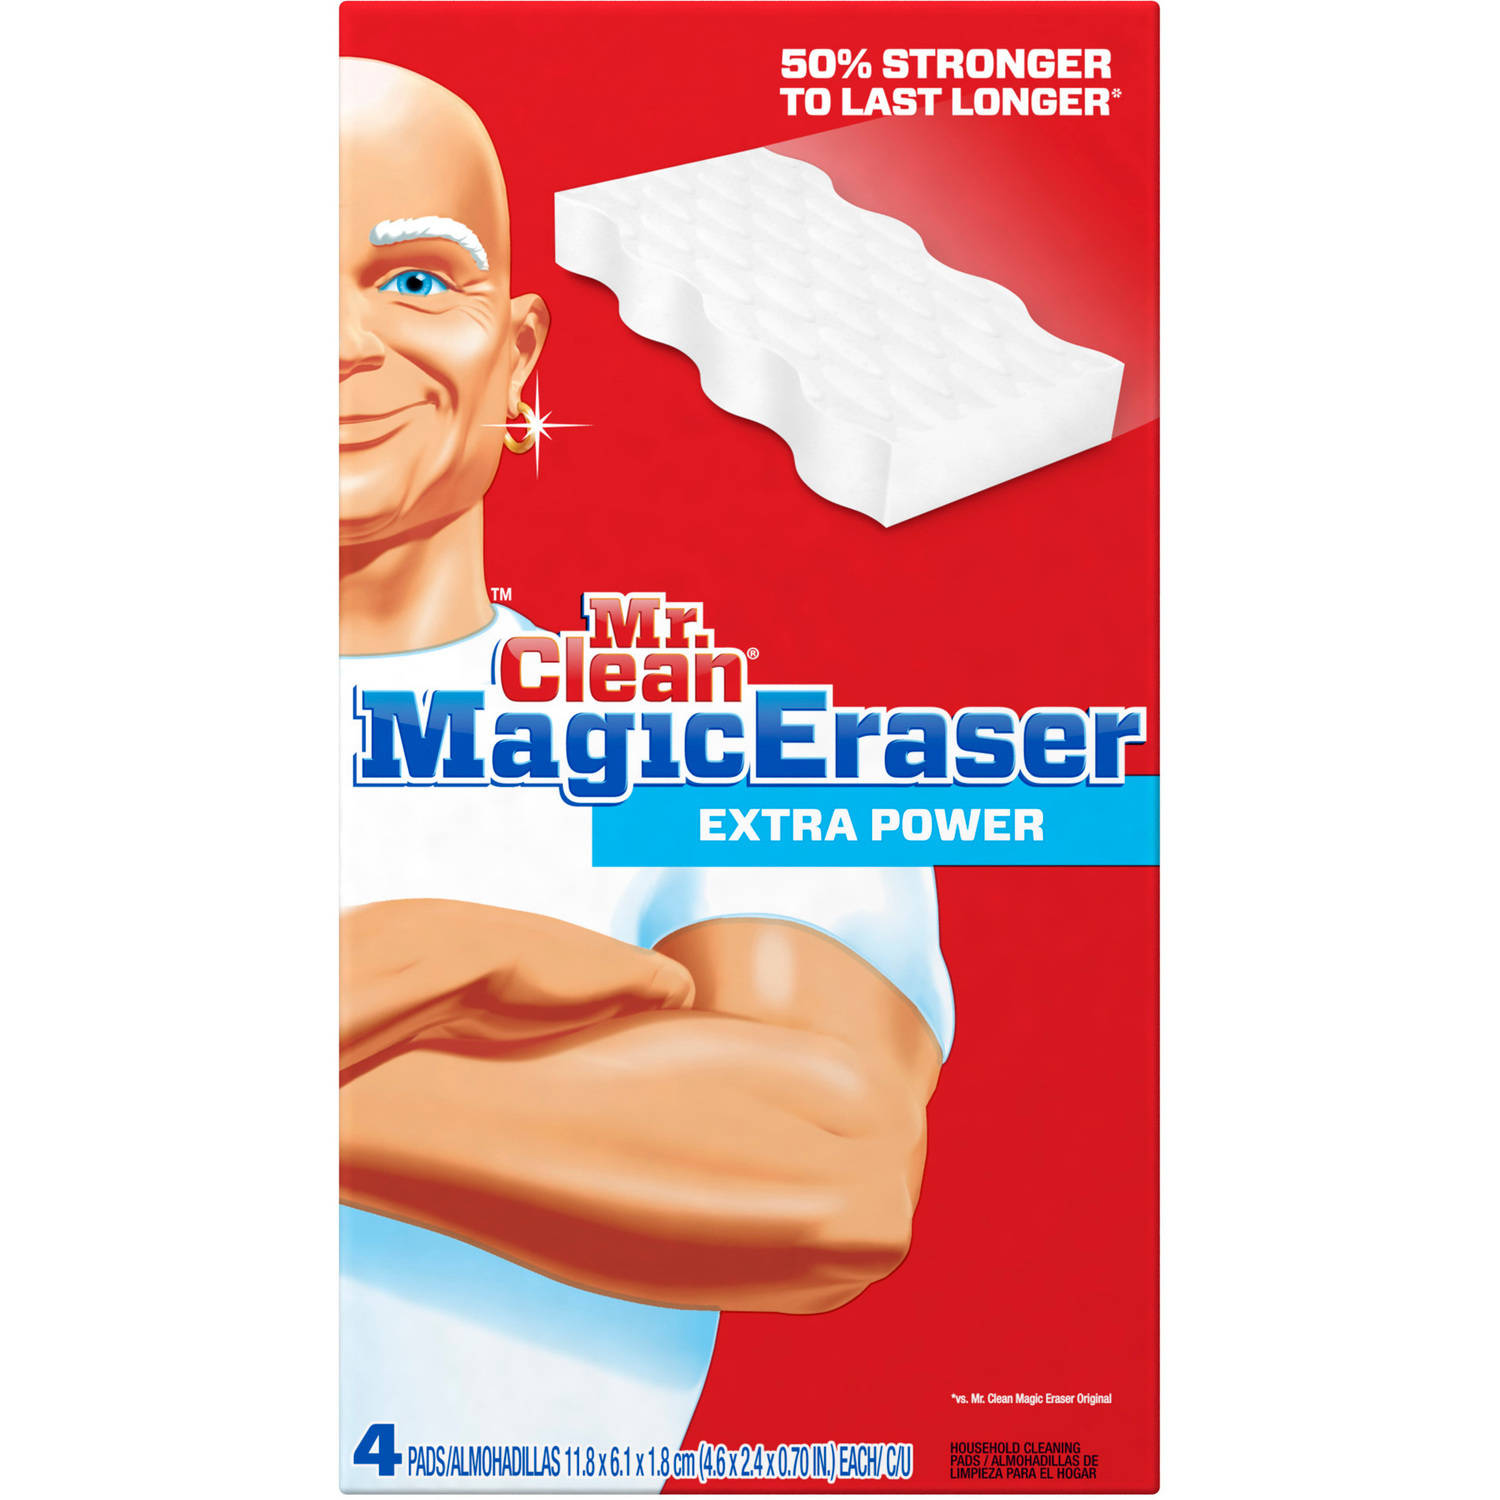 Mr. Clean Magic Eraser Extra Power Household Cleaning Pads, 4 count